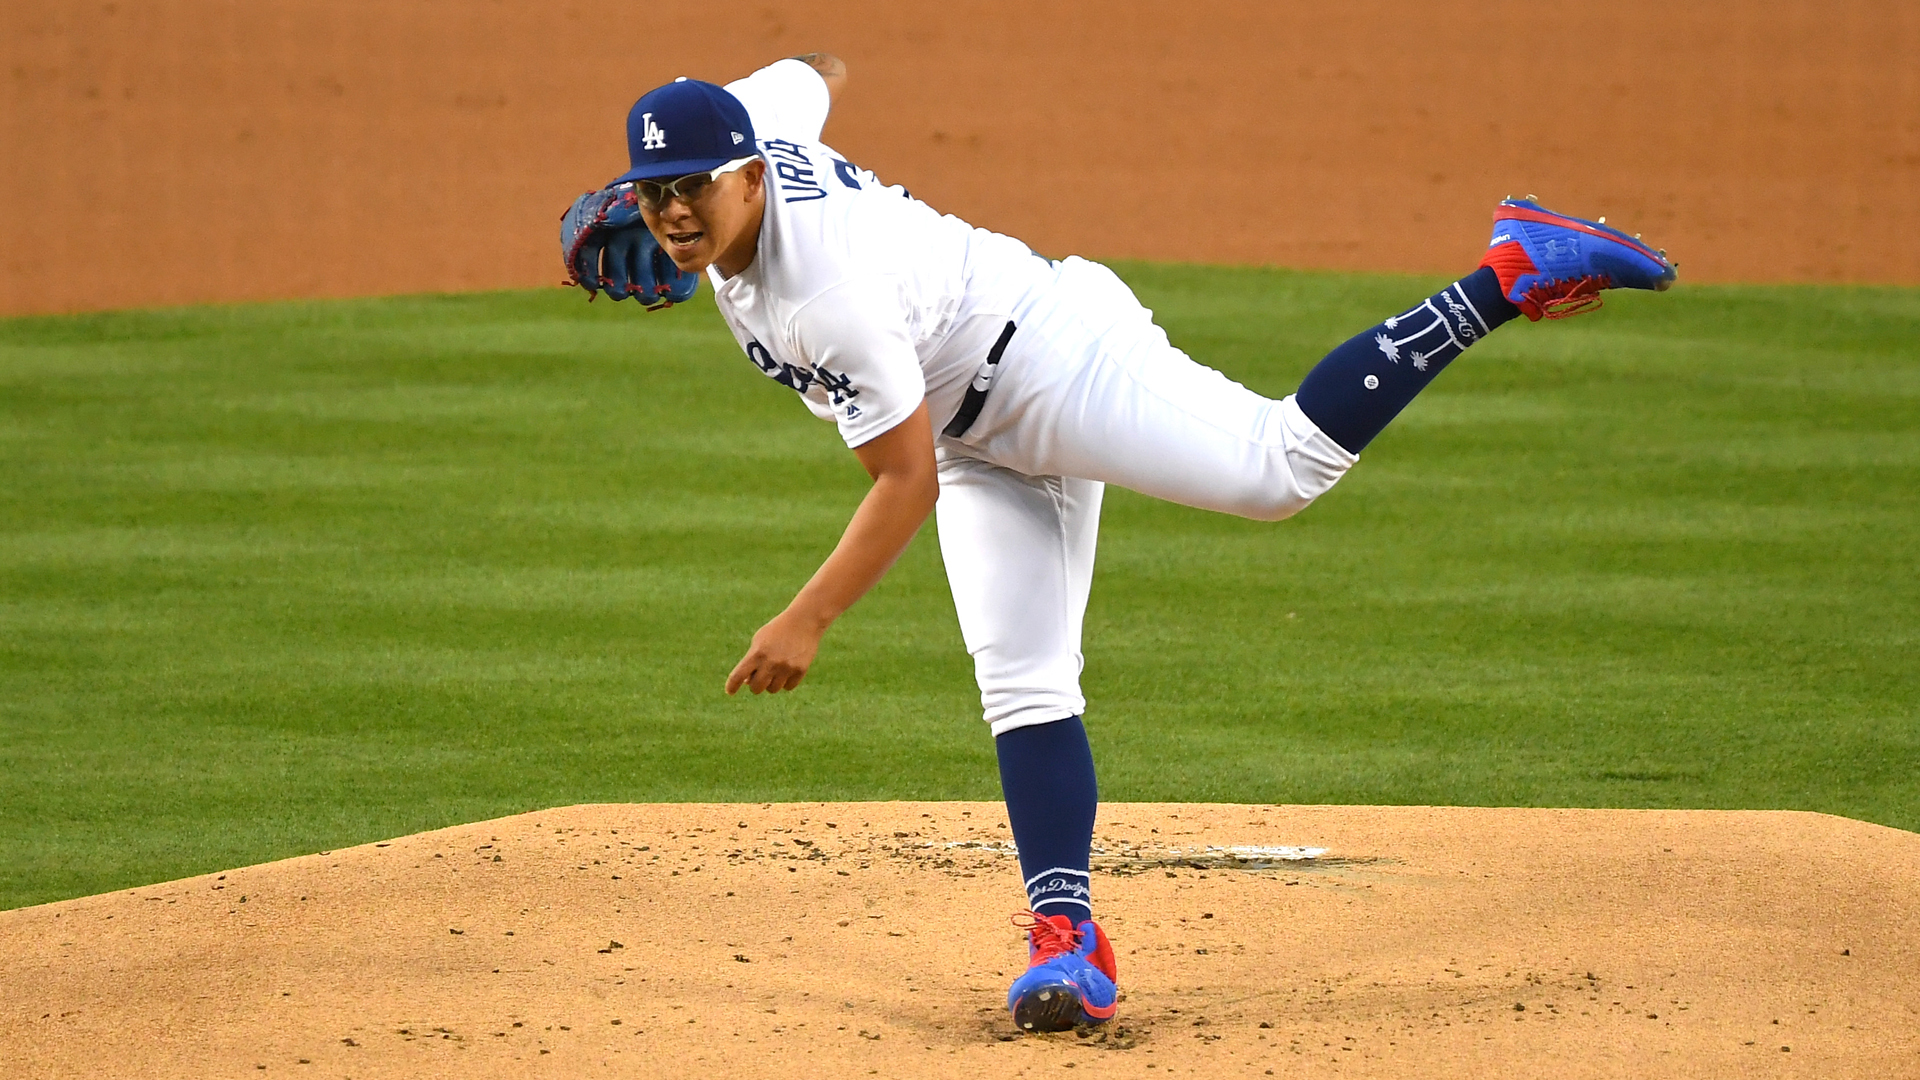 Julio Urias of the Los Angeles Dodgers pitches in the first inning of the game against the Milwaukee Brewers at Dodger Stadium on April 12, 2019. (Credit: Jayne Kamin-Oncea/Getty Images)